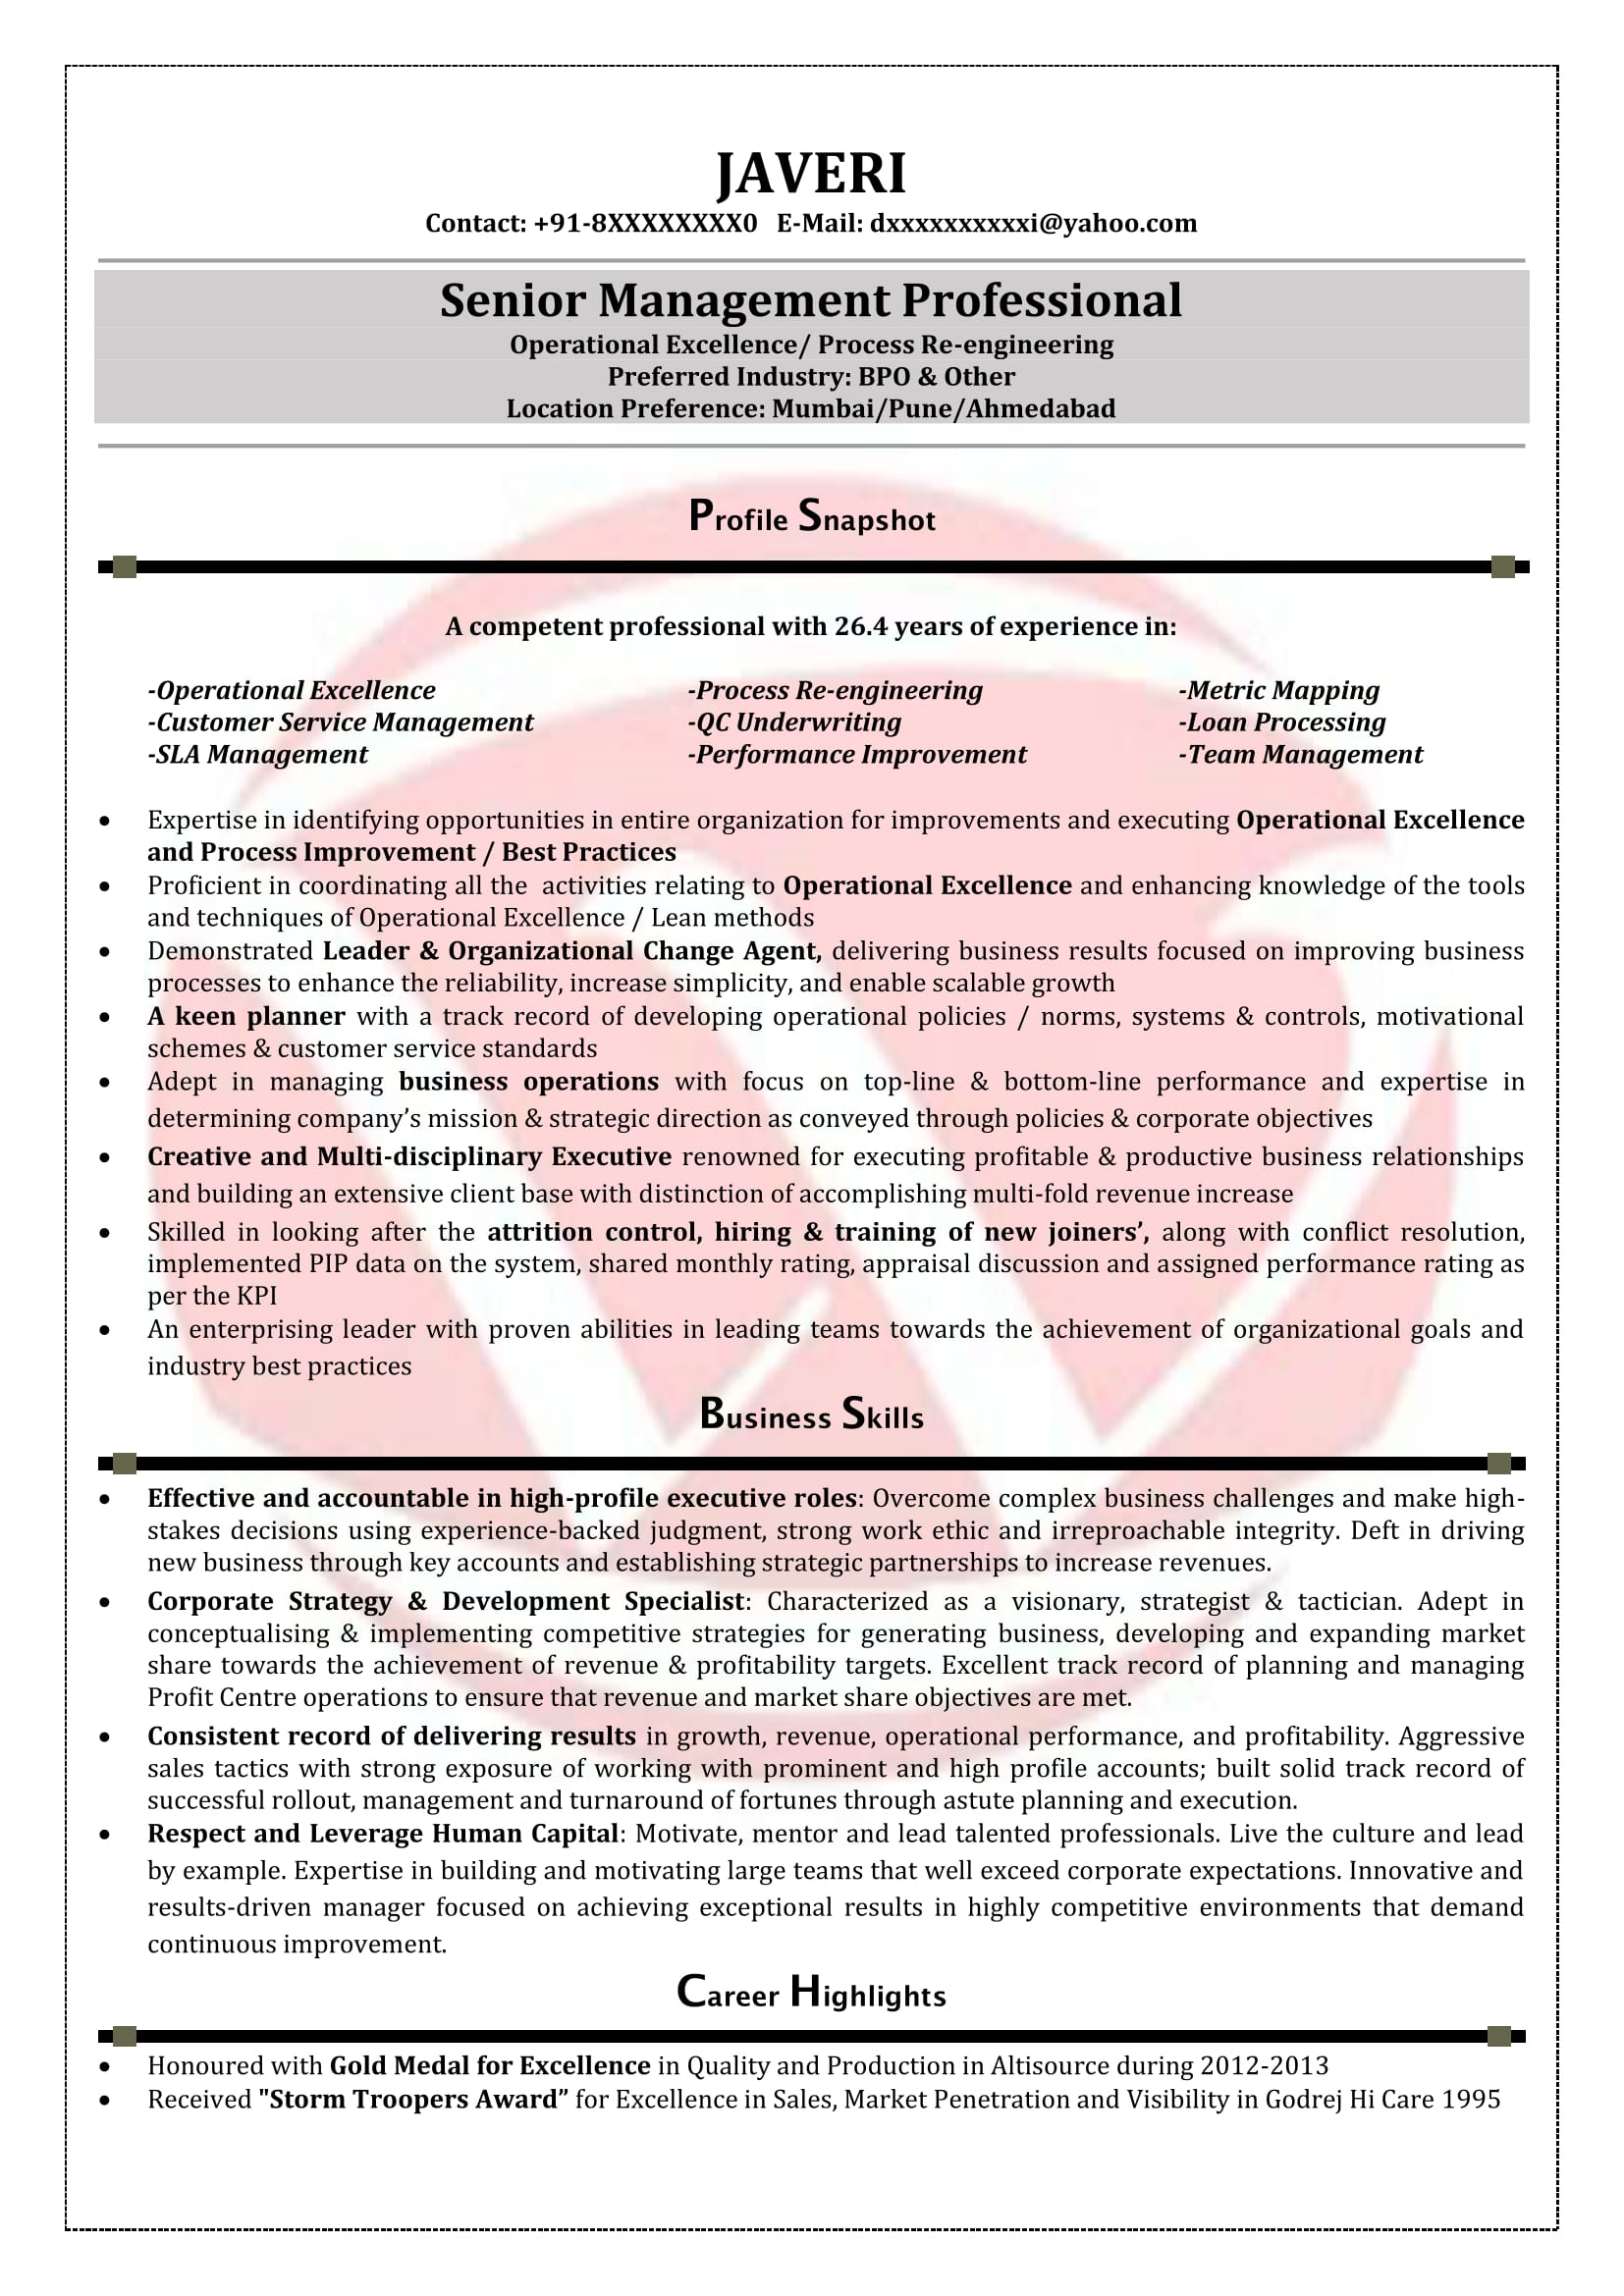 Resume Format For Bpo Bpo Sample Resumes Download Resume Format Templates